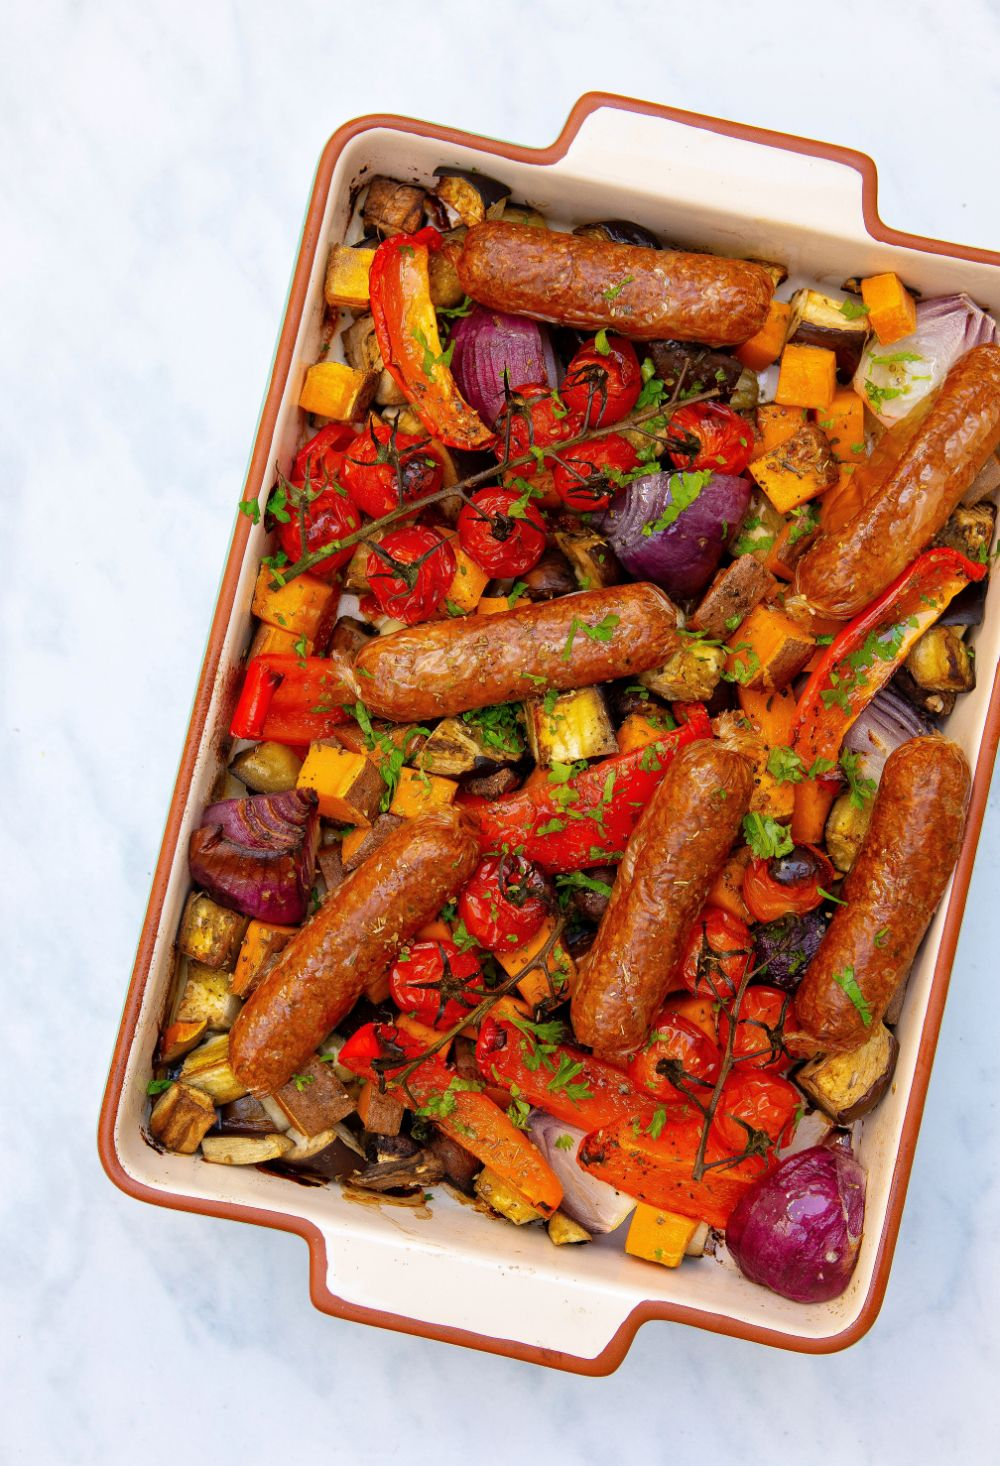 Plant Based Sausage Tray Bake Healthy Living James Gluten Free With Meatless Farm Co Recipe Sausage Tray Bake Vegan Sausage Sausage Bake